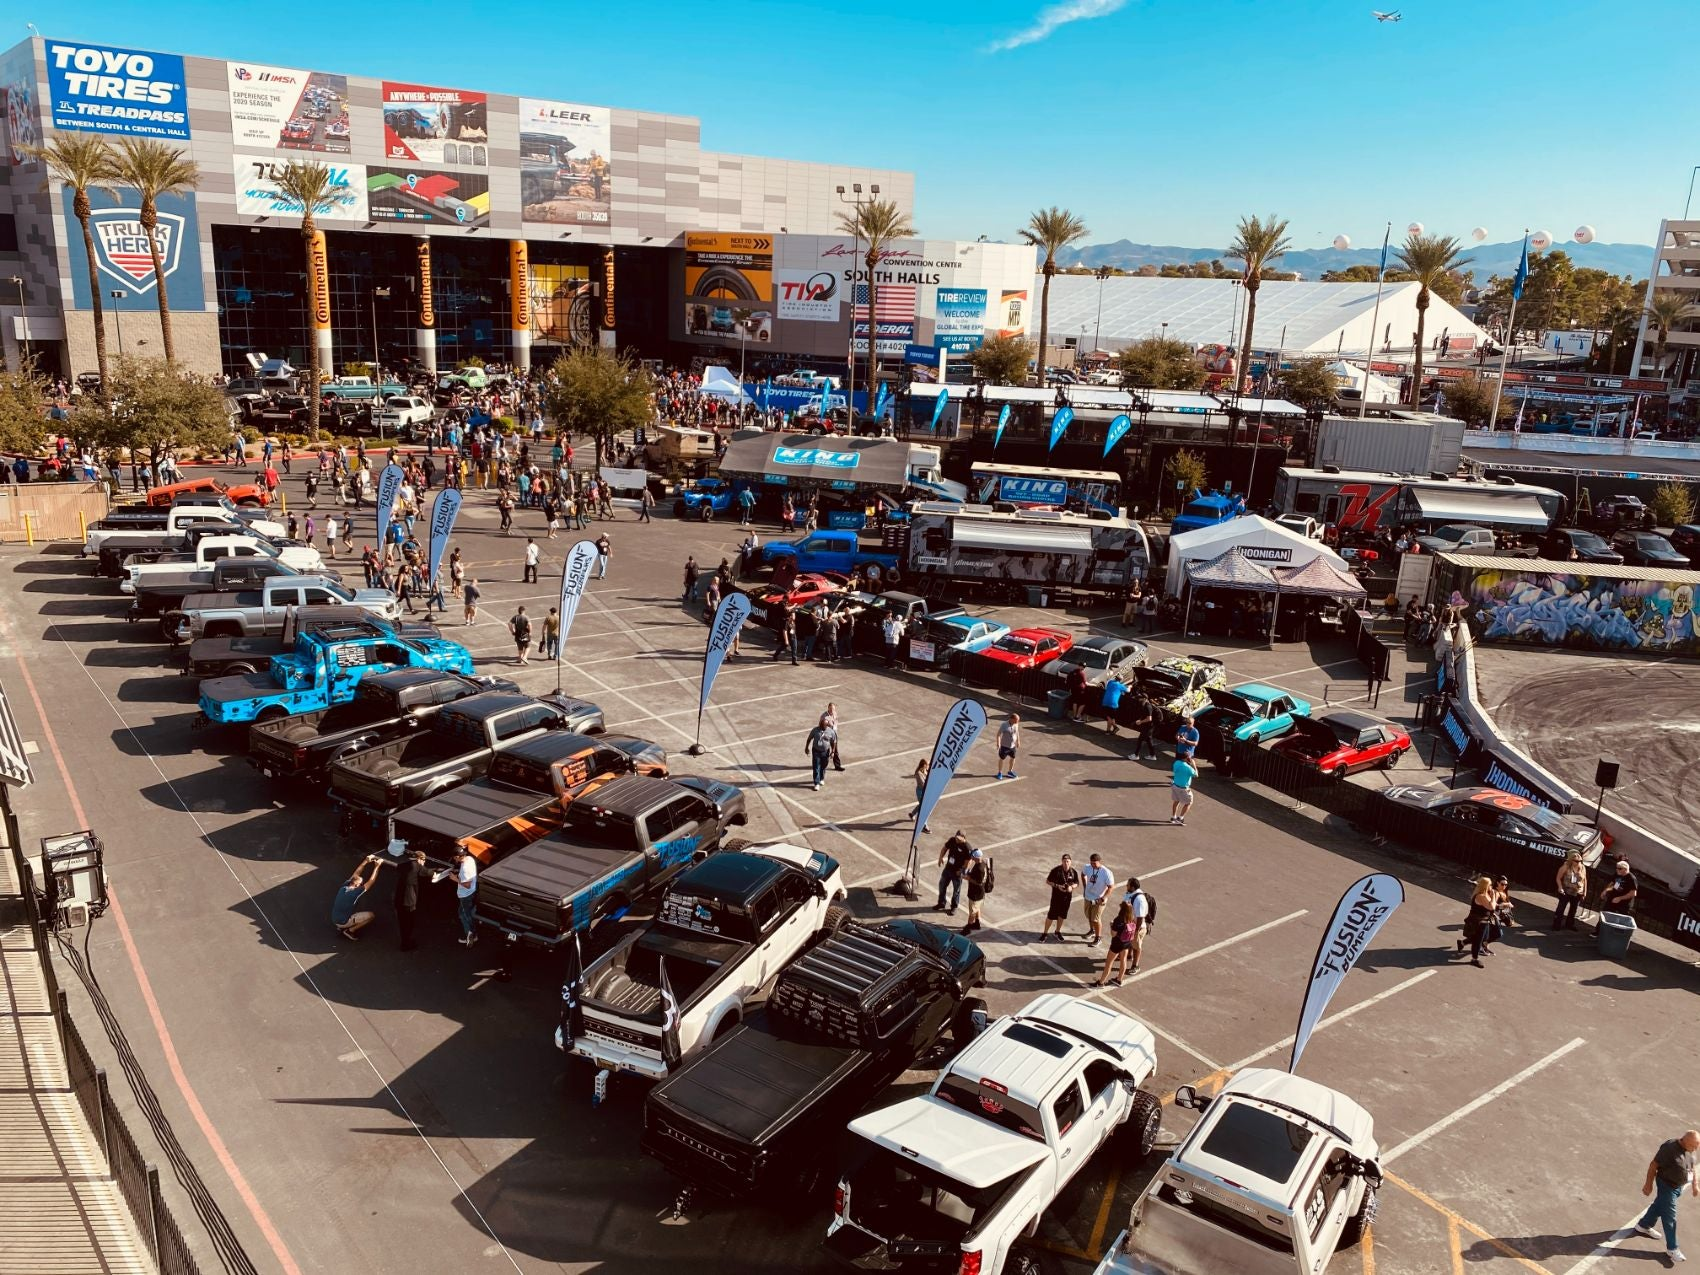 SEMA 2021 Preview: PRO Cup Challenge, Battle of the Builders, New Mobile Tire Equipment & More